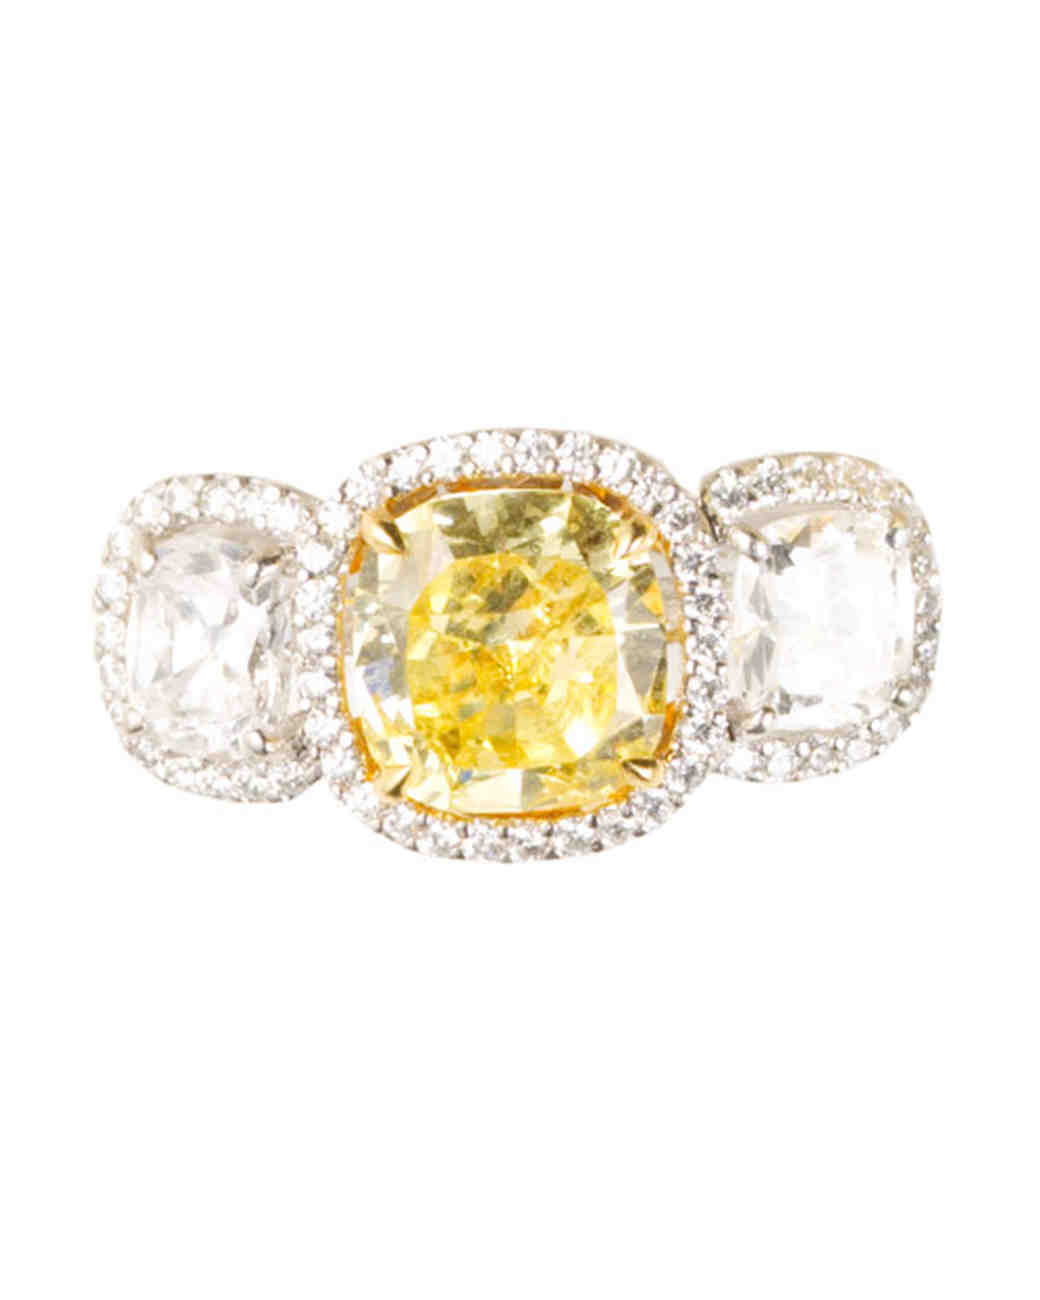 msw_sum10_yellow_ring_katz.jpg